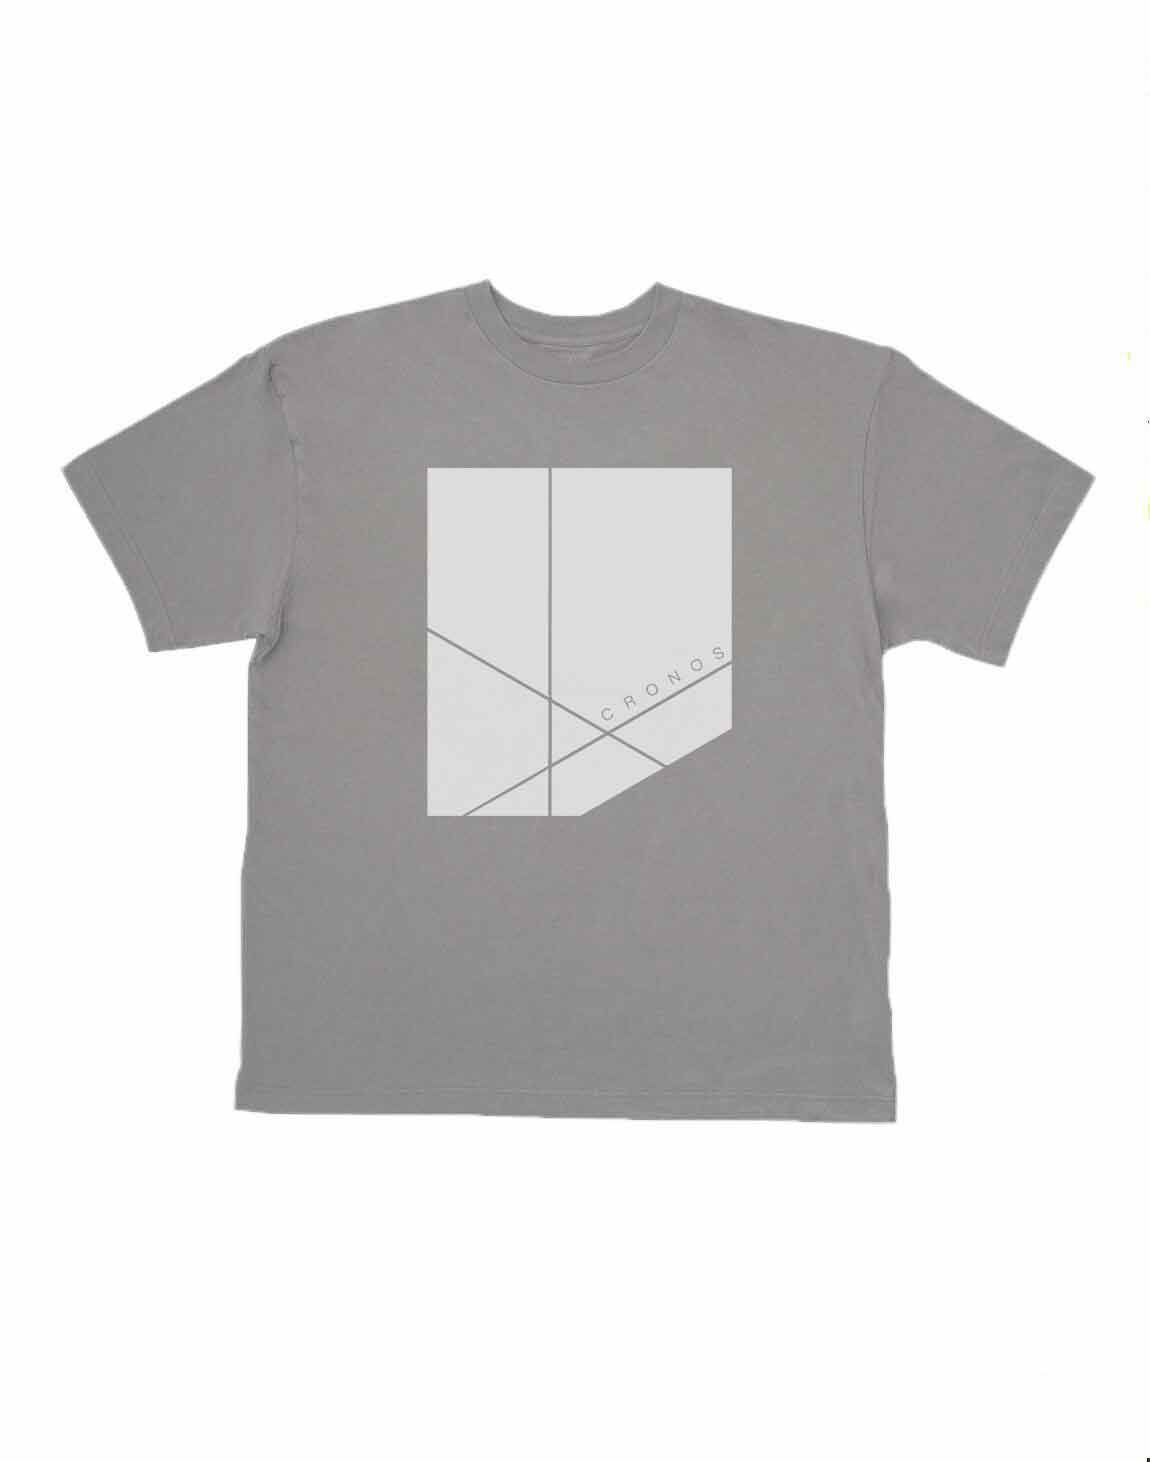 <img class='new_mark_img1' src='https://img.shop-pro.jp/img/new/icons1.gif' style='border:none;display:inline;margin:0px;padding:0px;width:auto;' />CRONOS NEW BOX LOGO OVER SIZE T-SHIRTS【GRAY】